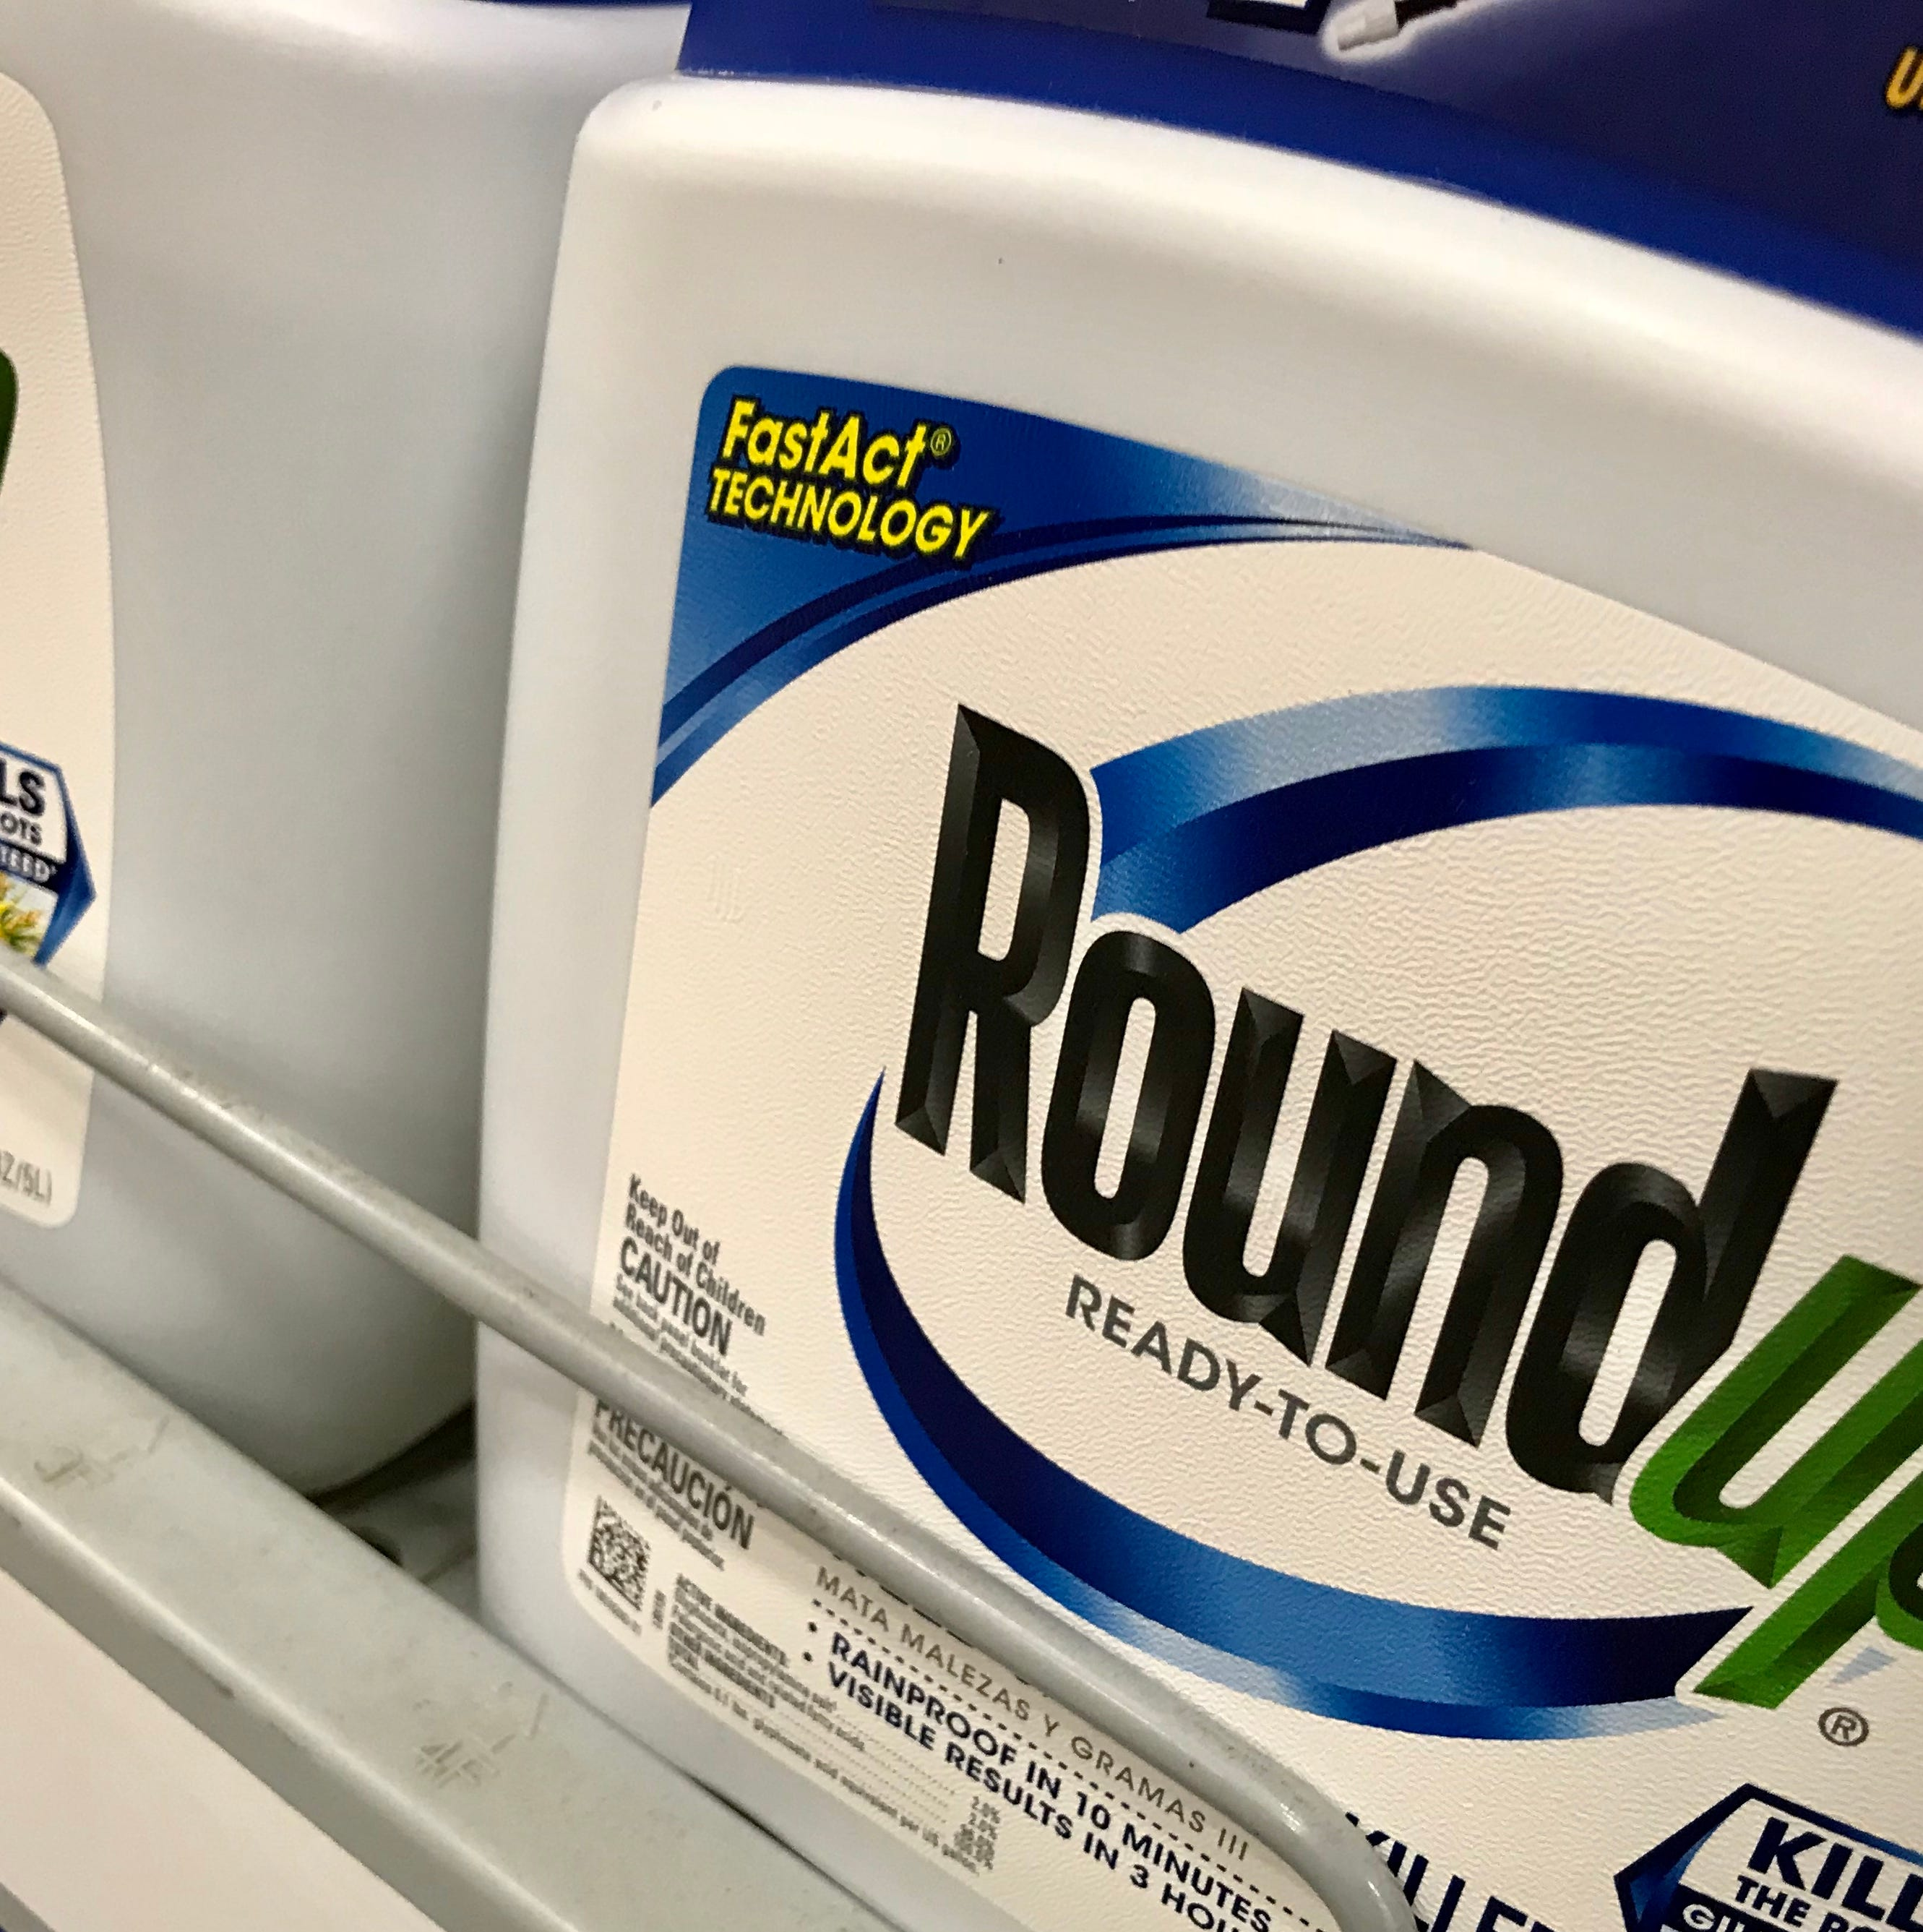 The herbicide Roundup has been in the news recently after a huge settlement in California in favor of a man who claimed the product caused his cancer.